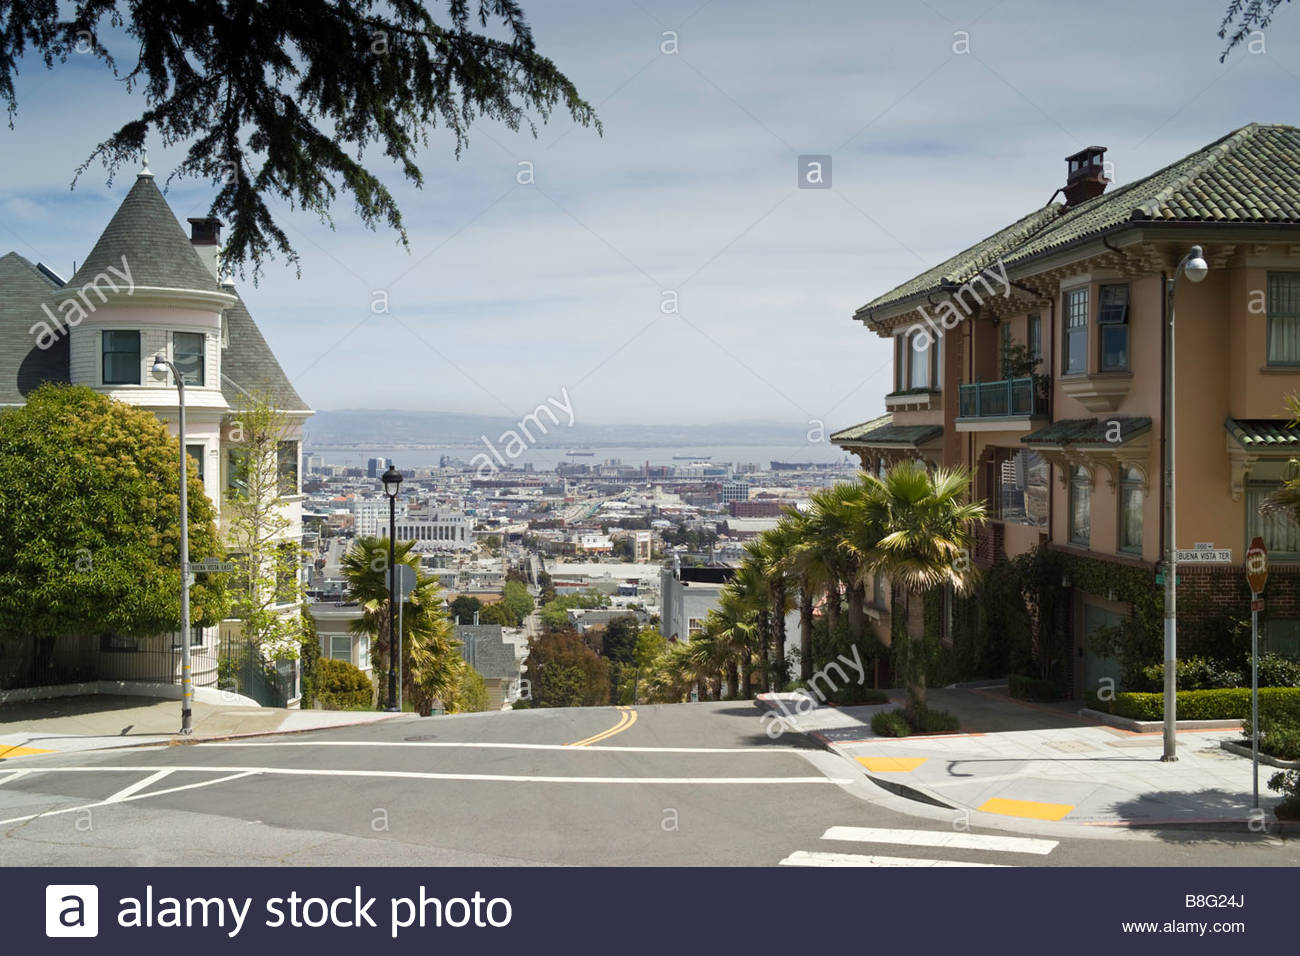 Street view overlooking San Francisco - Stock Image